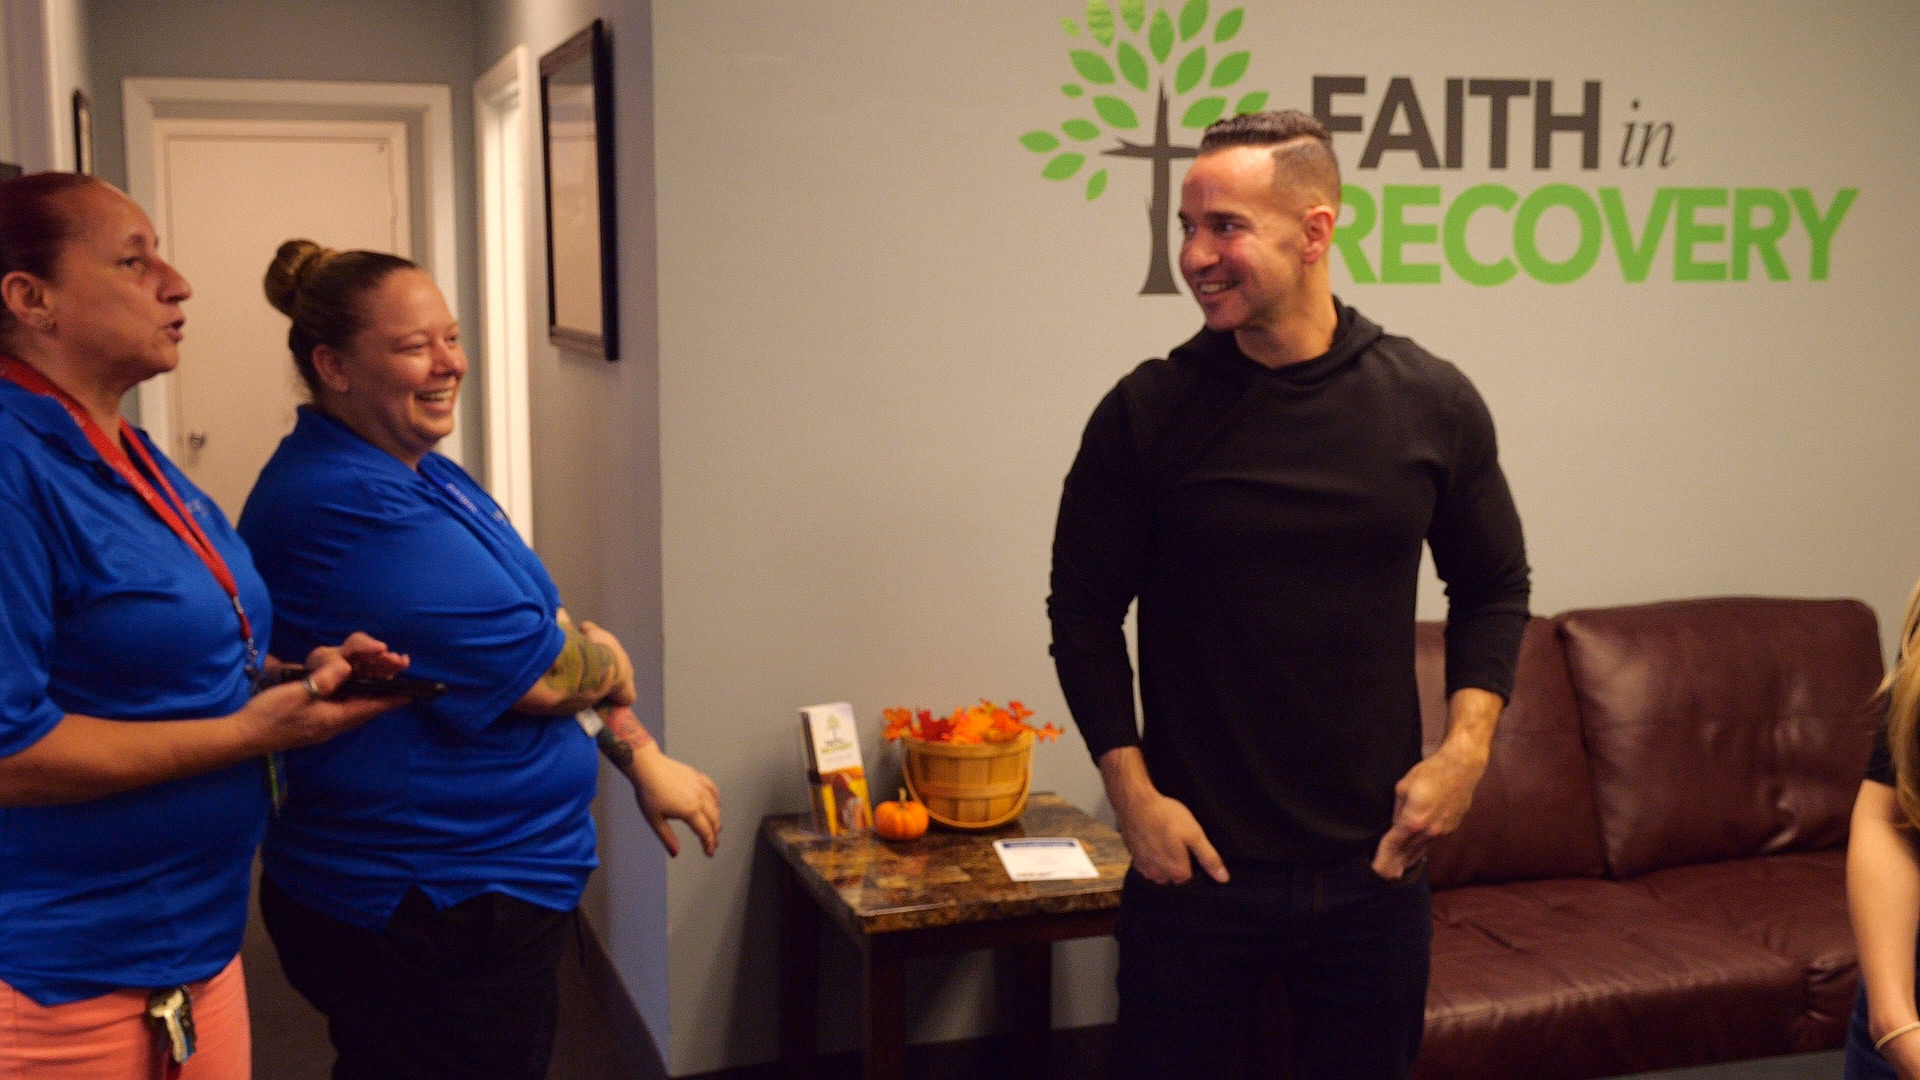 How Jersey Shore's Mike 'The Situation' Sorrentino, 4 Years Sober, Is Helping Others Battling Addiction